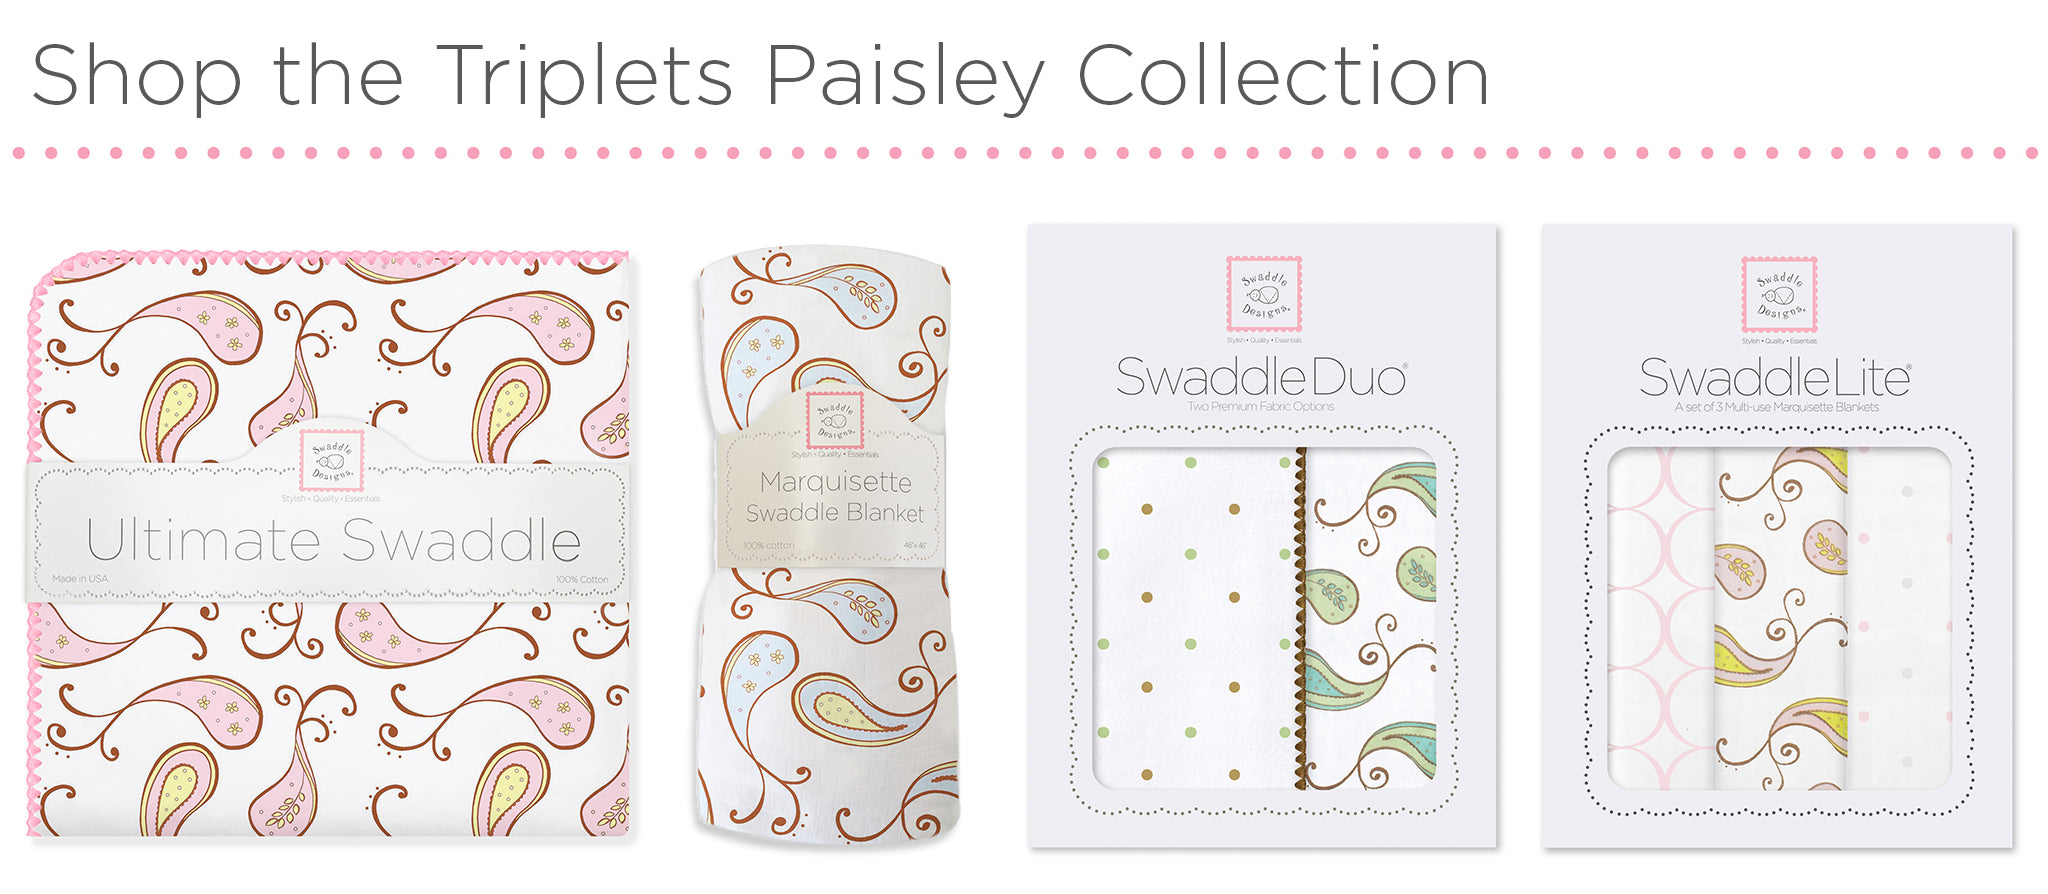 Shop Triplets Paisley Collection